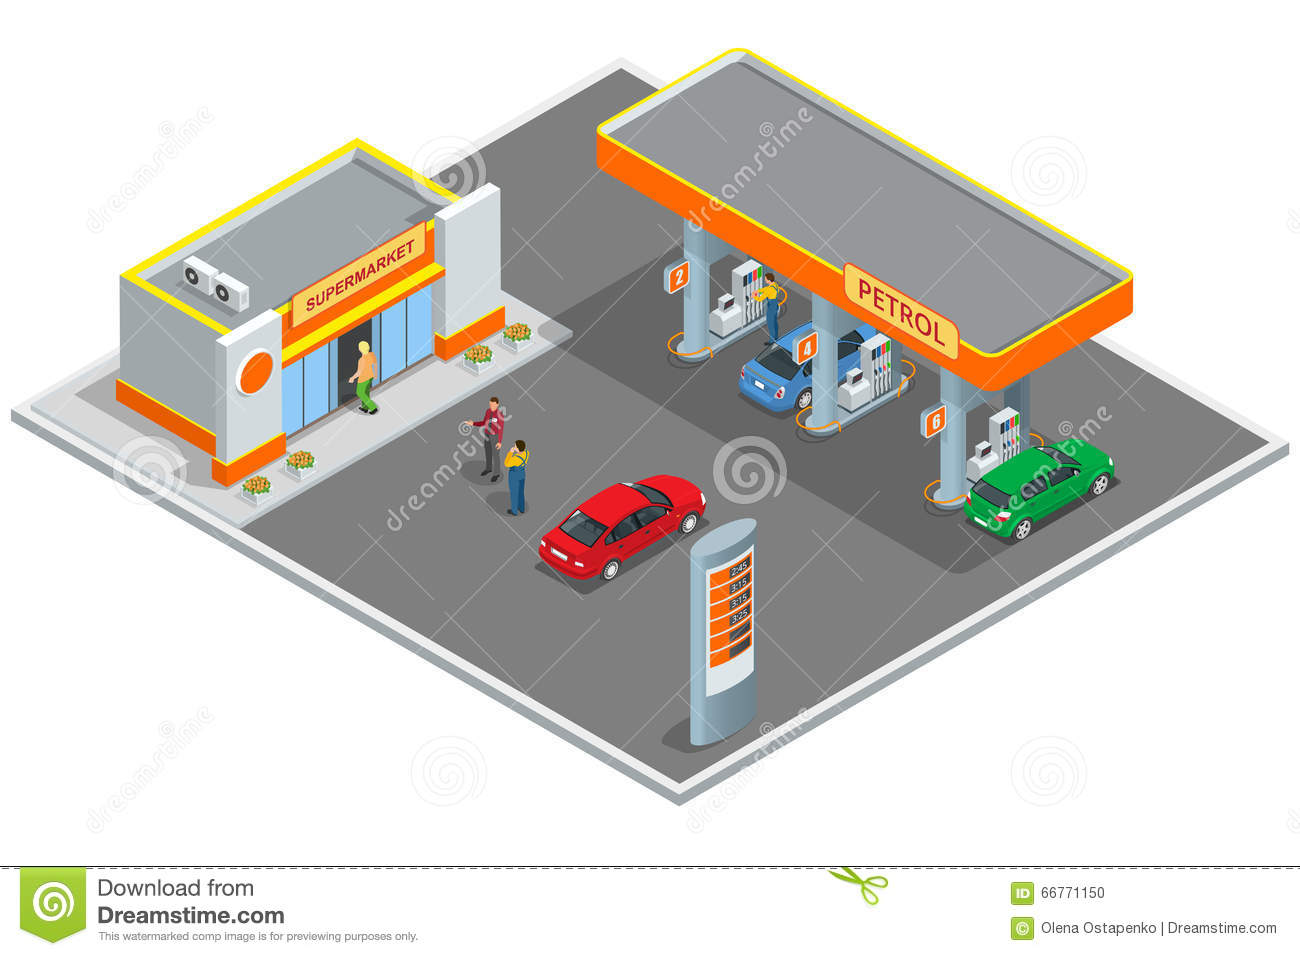 https://thumbs.dreamstime.com/z/gas-station-petrol-station-refilling-shopping-service-refill-station-cars-customers-business-icon-infographics-design-web-66771150.jpg